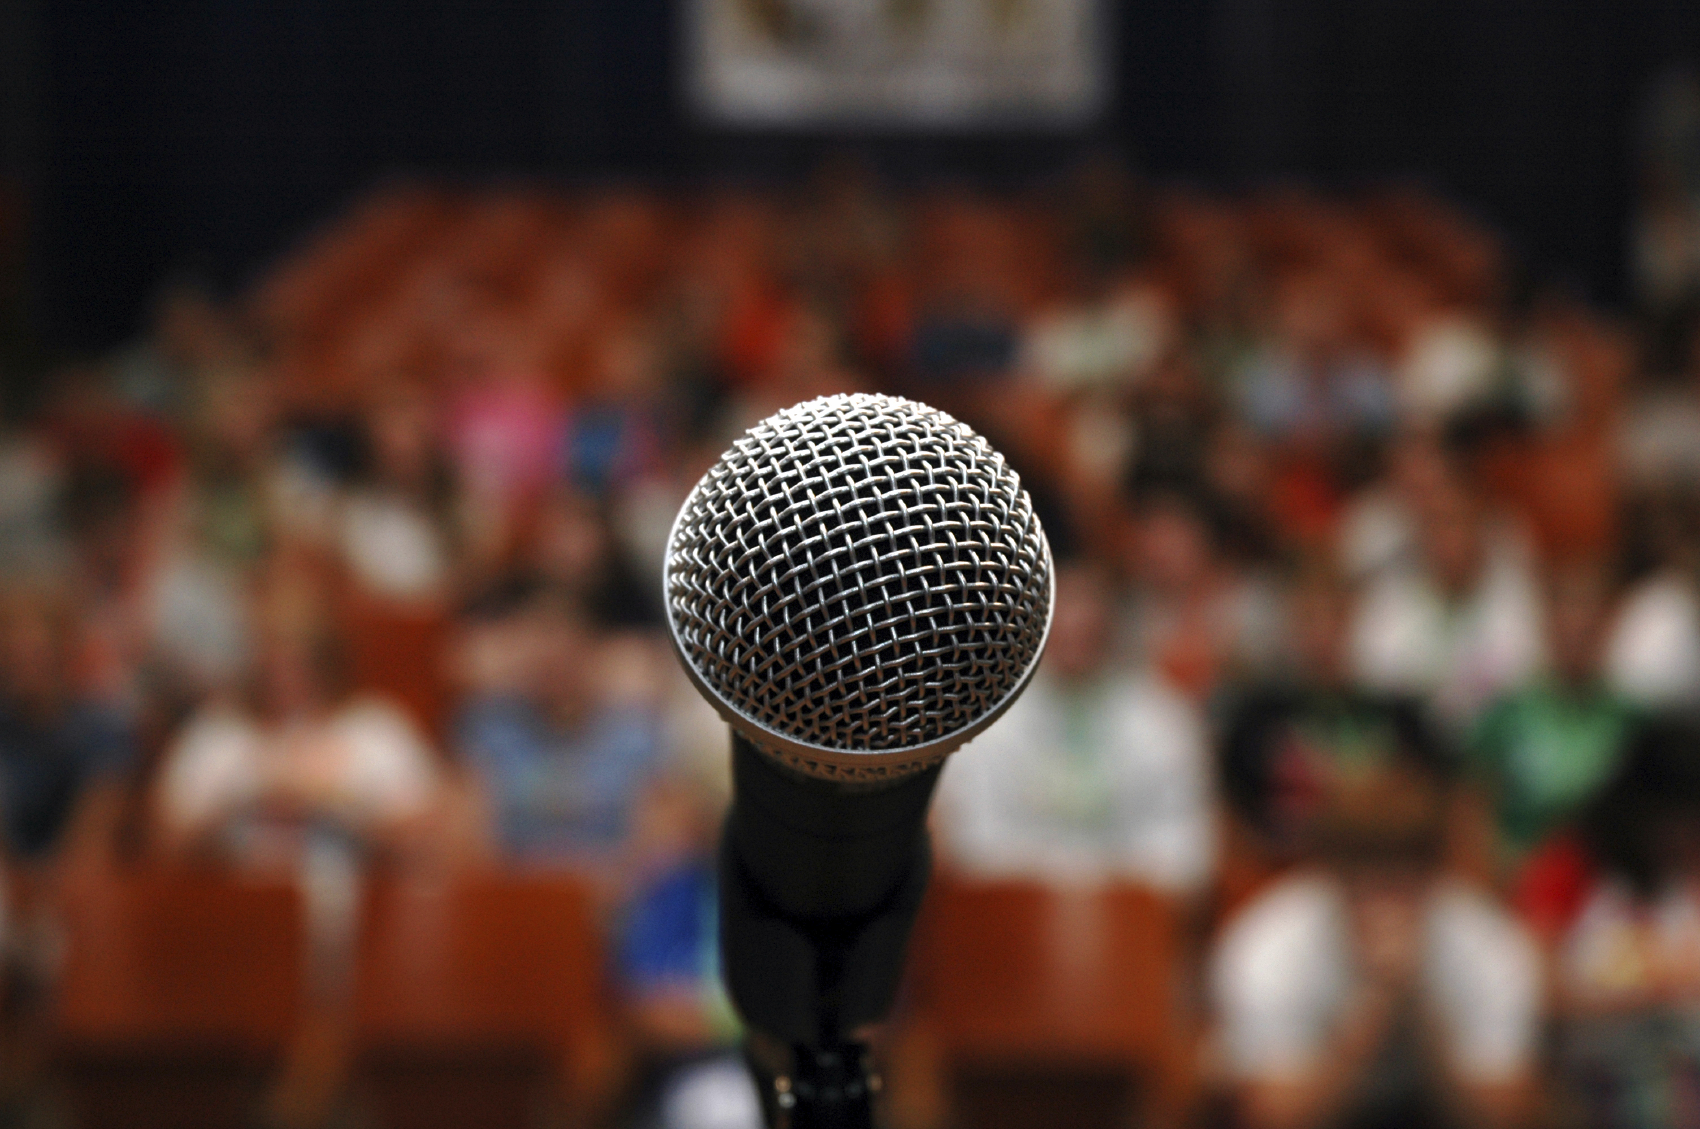 Stock image of a closeup on a microphone with an audience in the background.